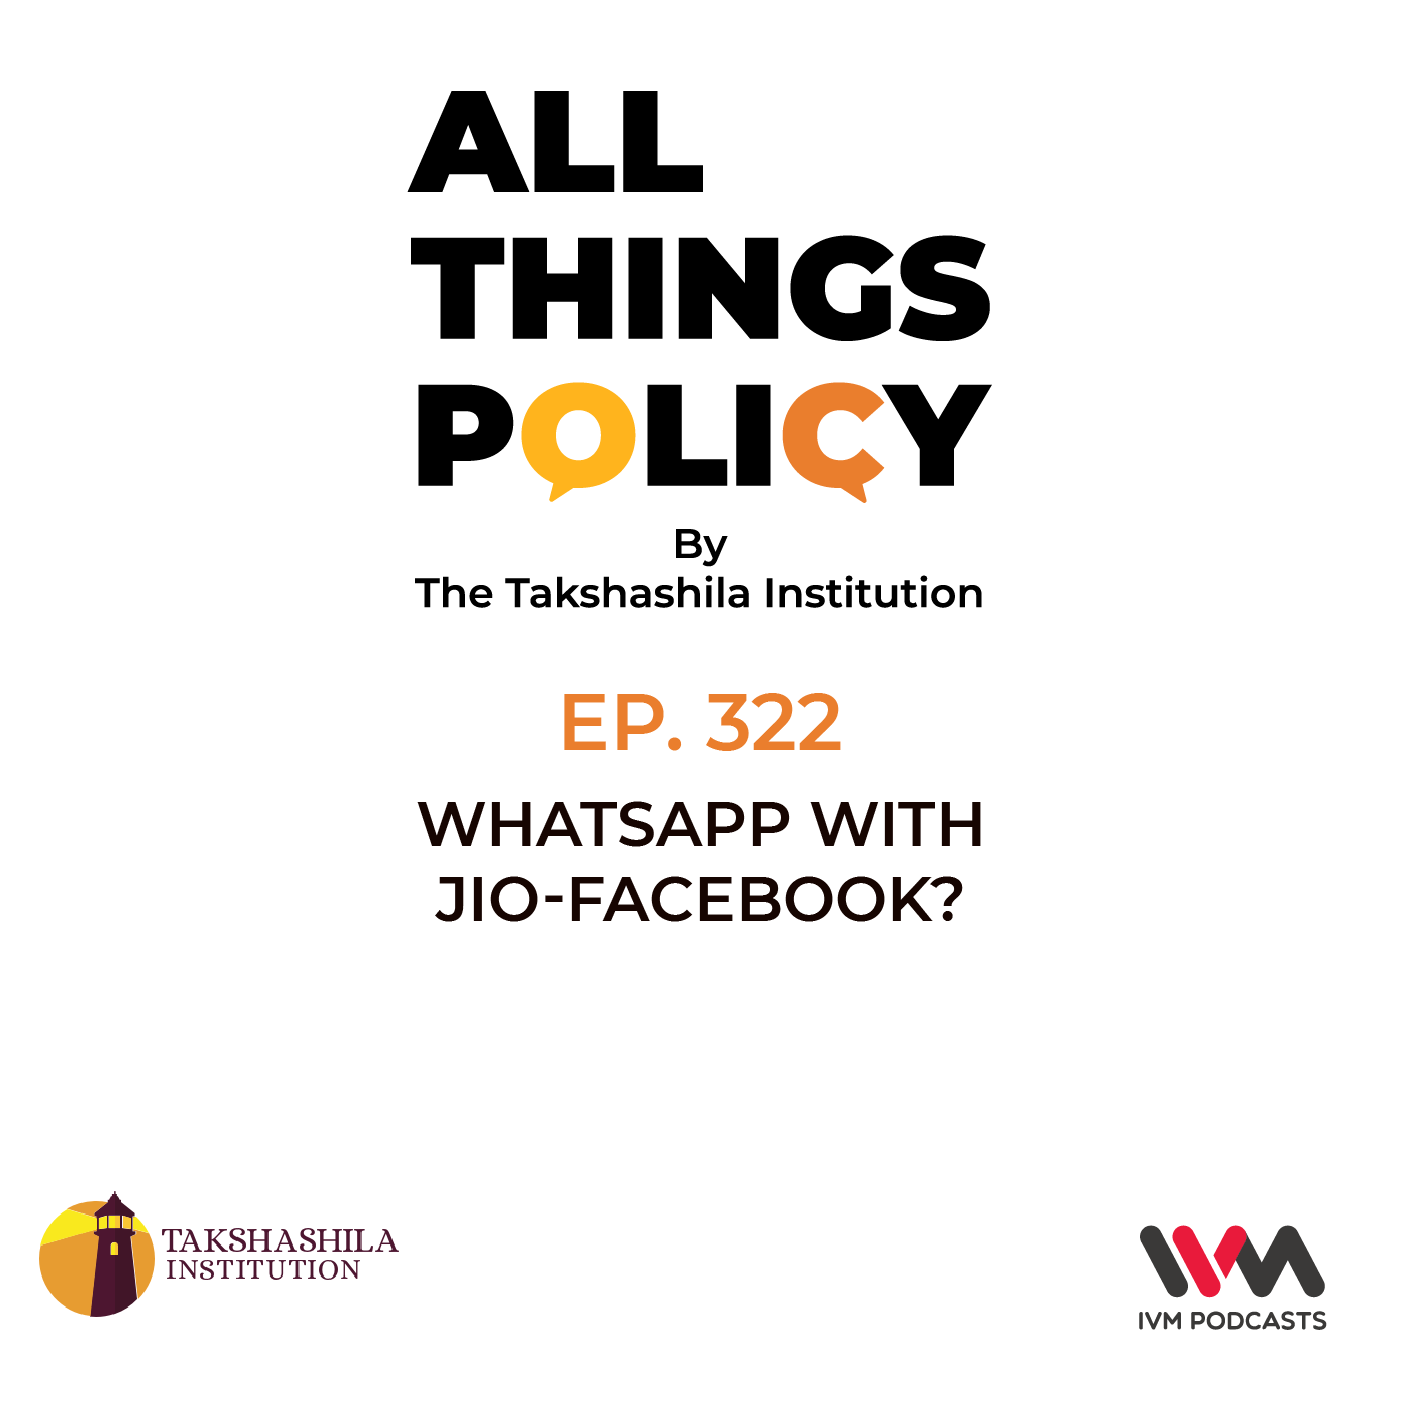 Ep. 322: WhatsApp with Jio-Facebook?